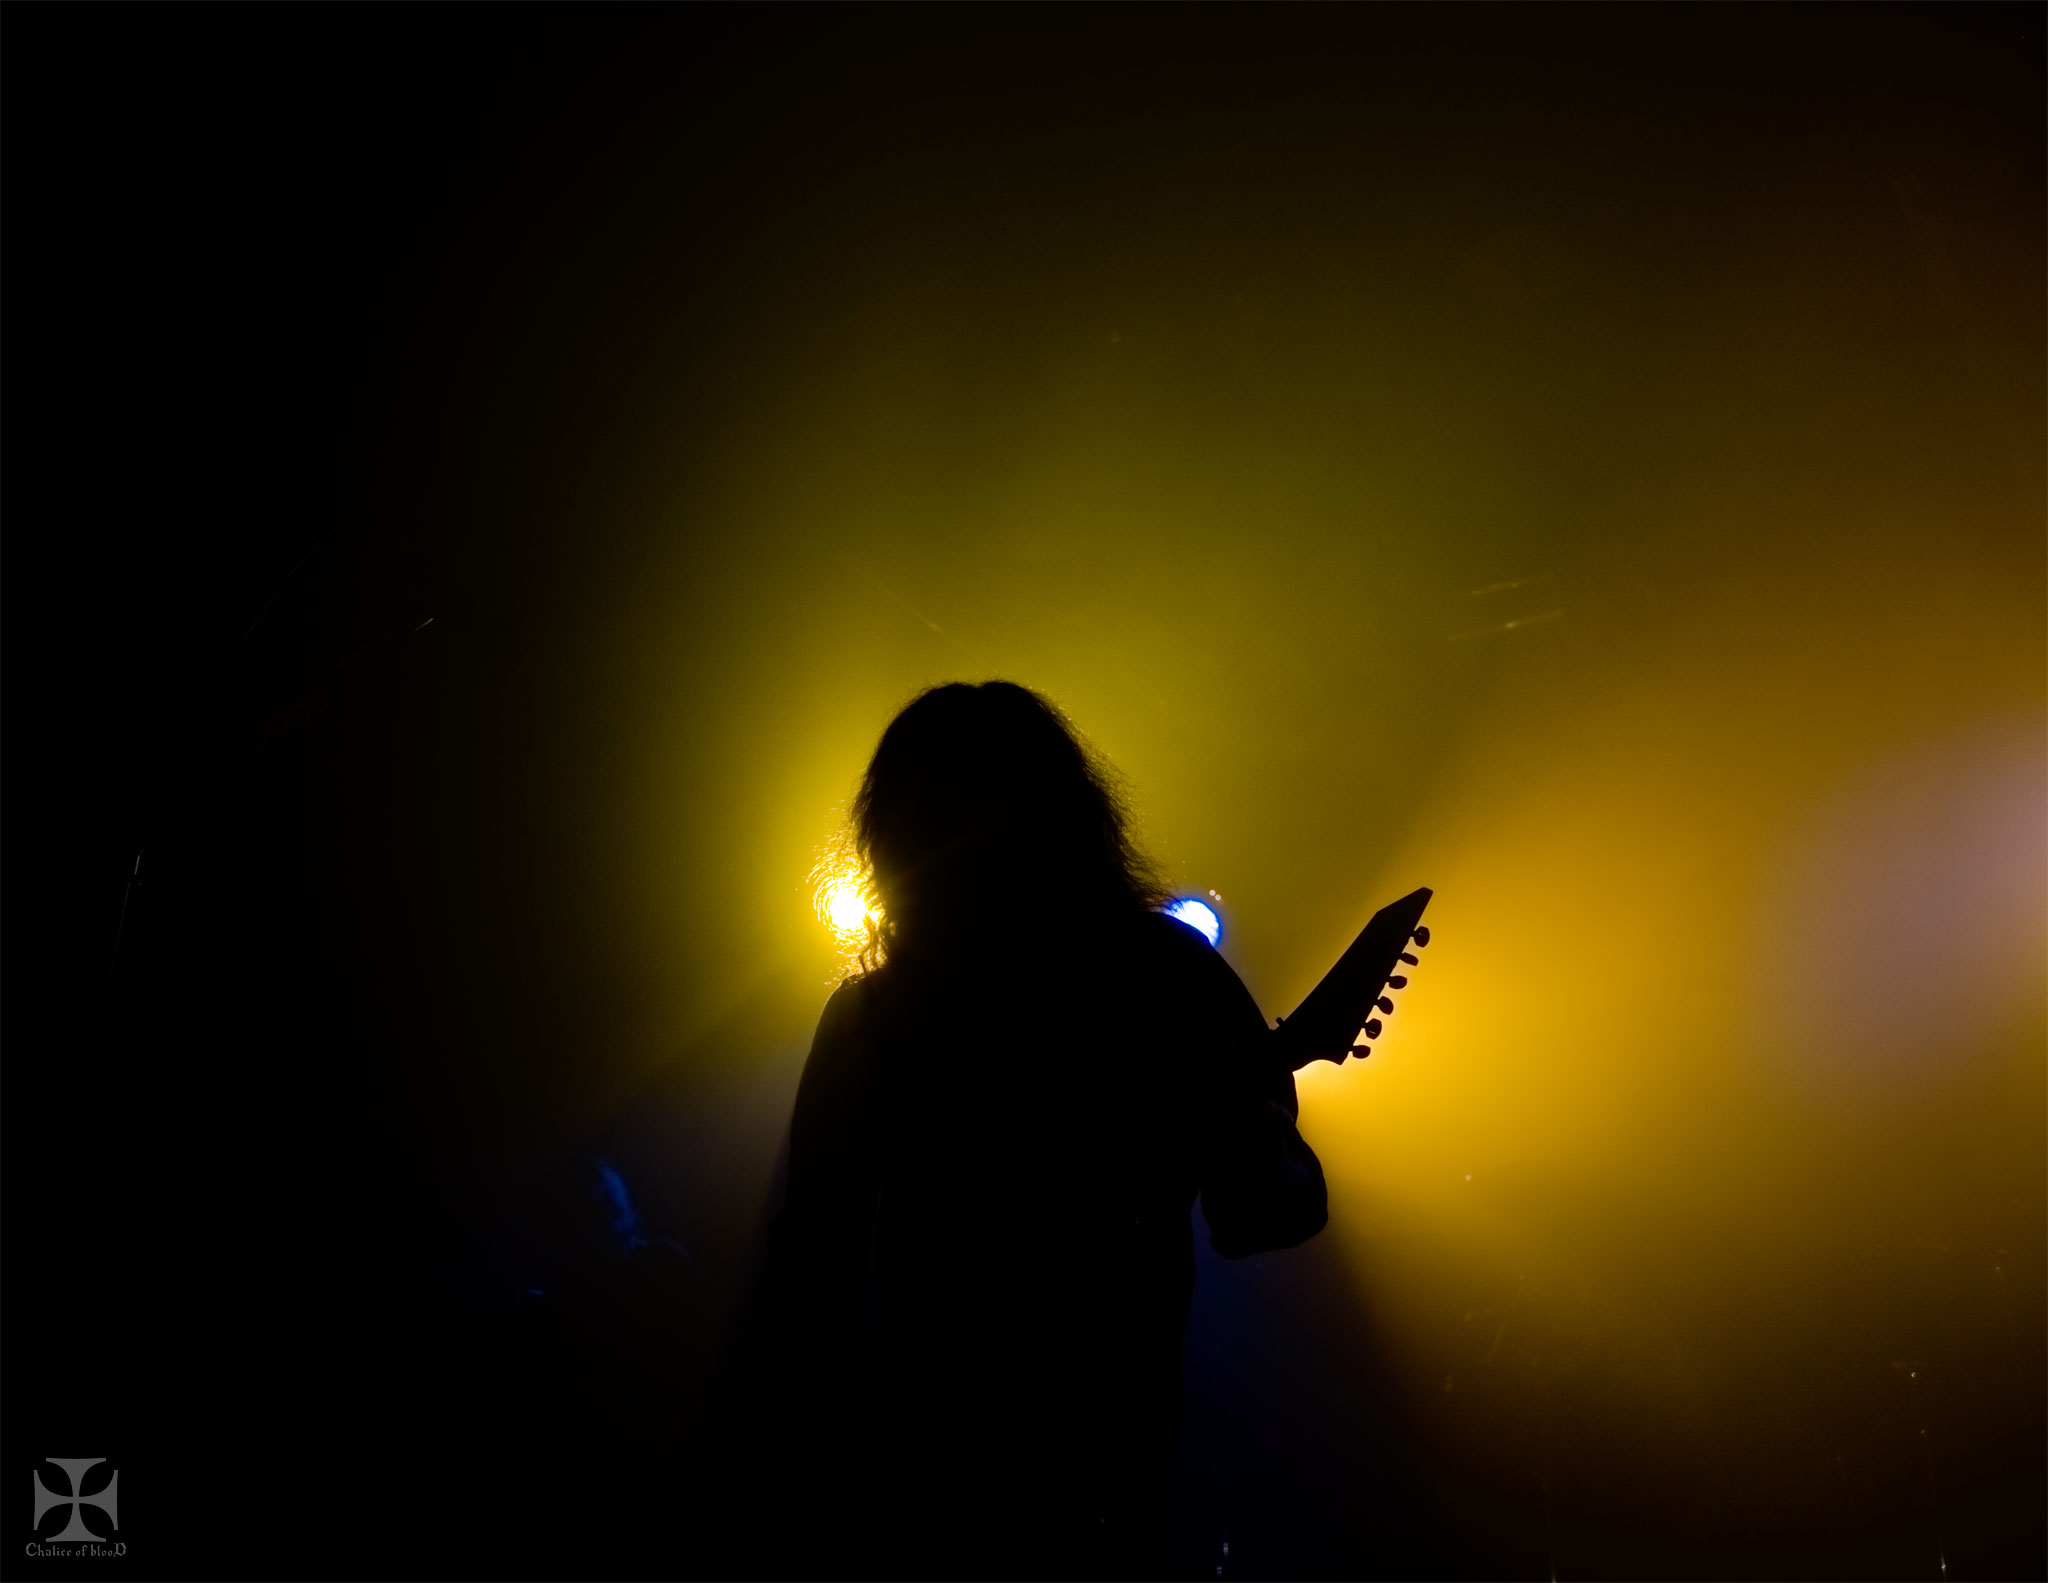 Kreator-0002-Exposure-watermarked.jpg